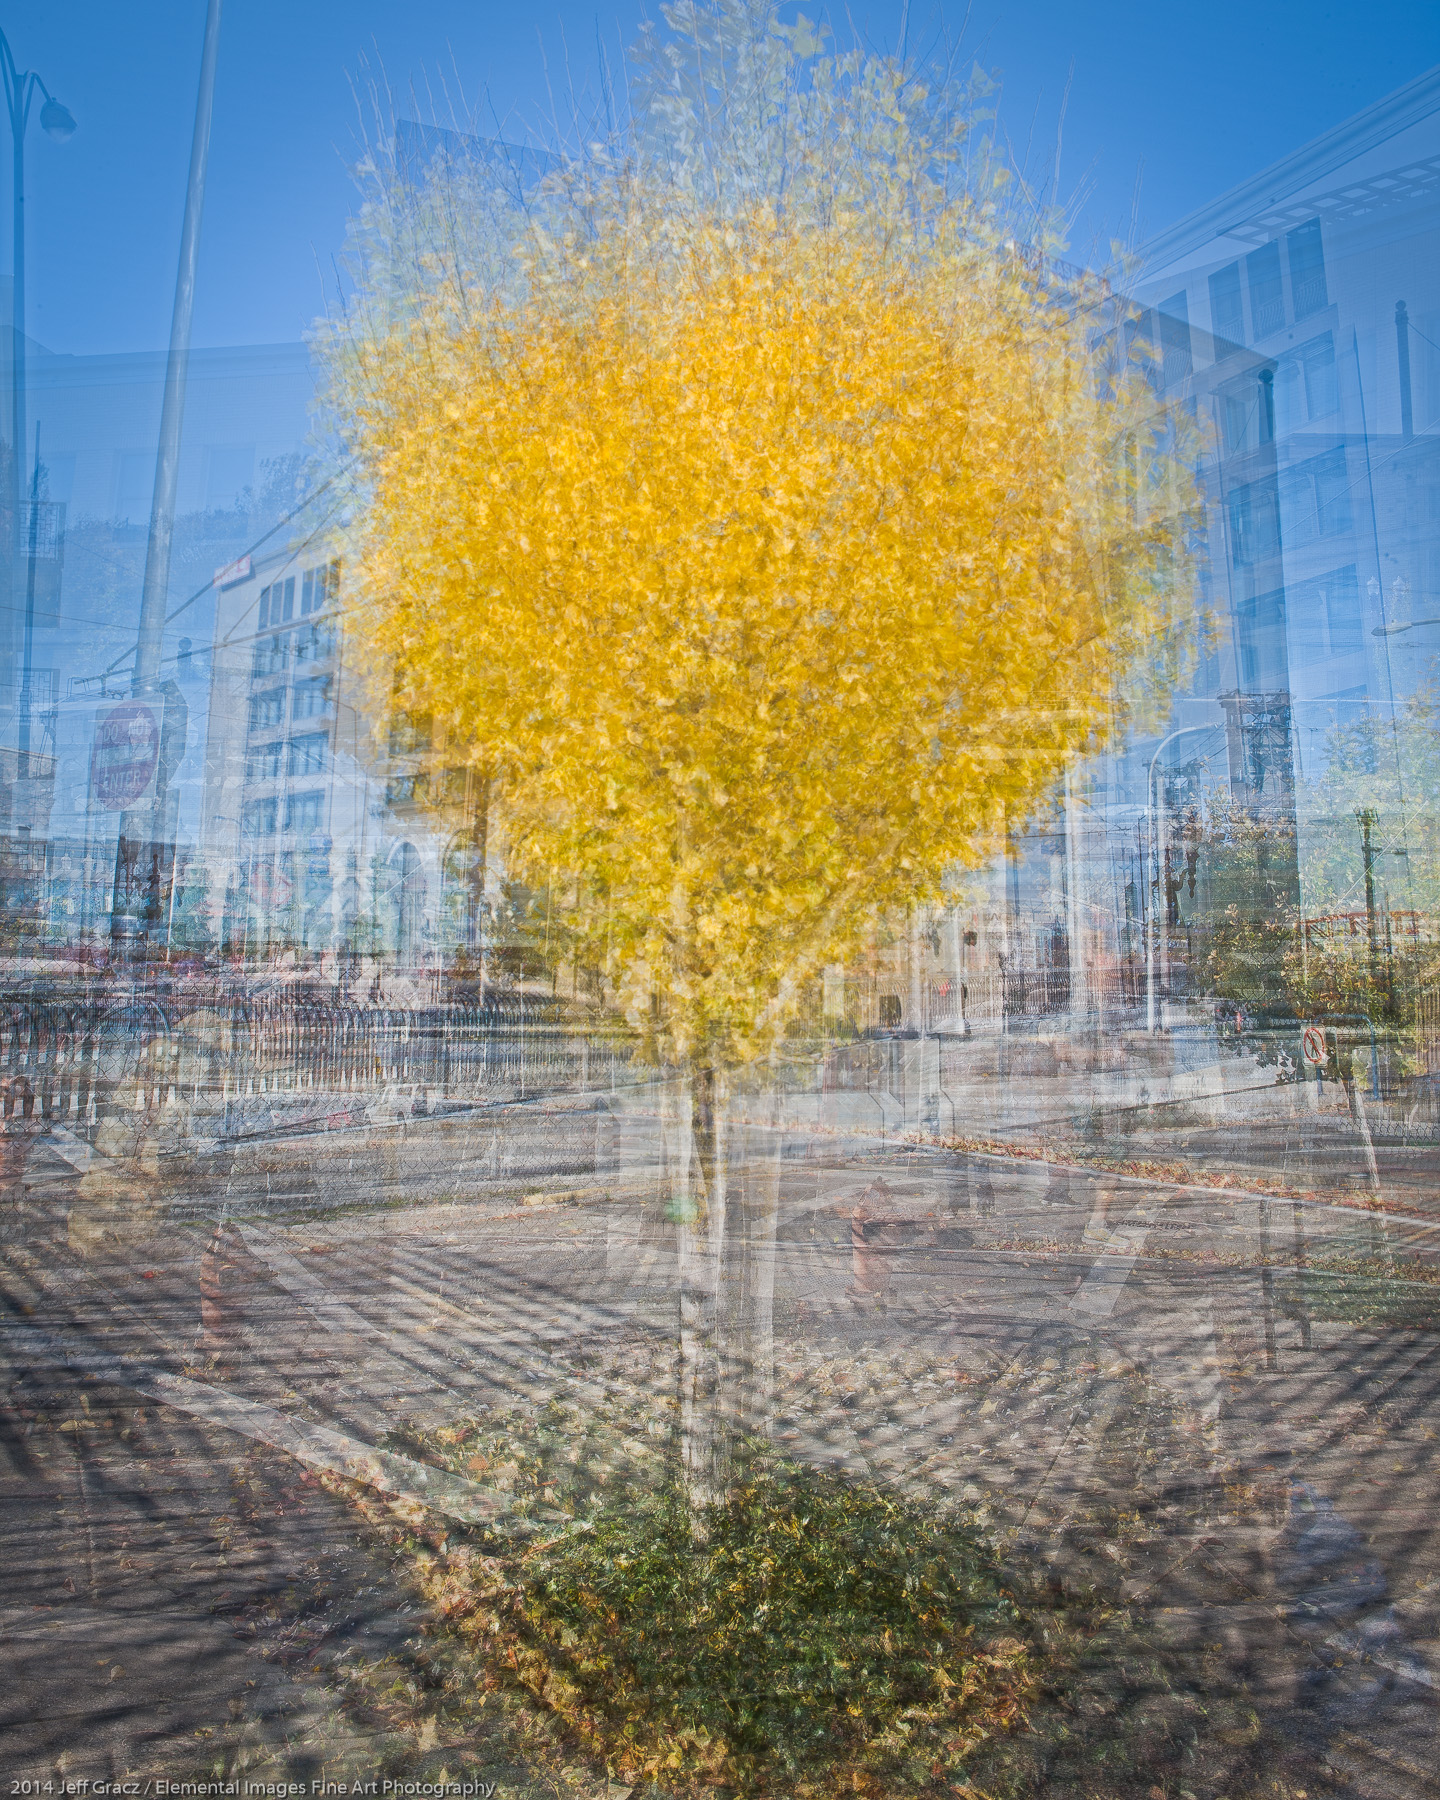 Arborhoods Series: Street Gingko | Portland | OR | USA - © 2014 Jeff Gracz / Elemental Images Fine Art Photography - All Rights Reserved Worldwide